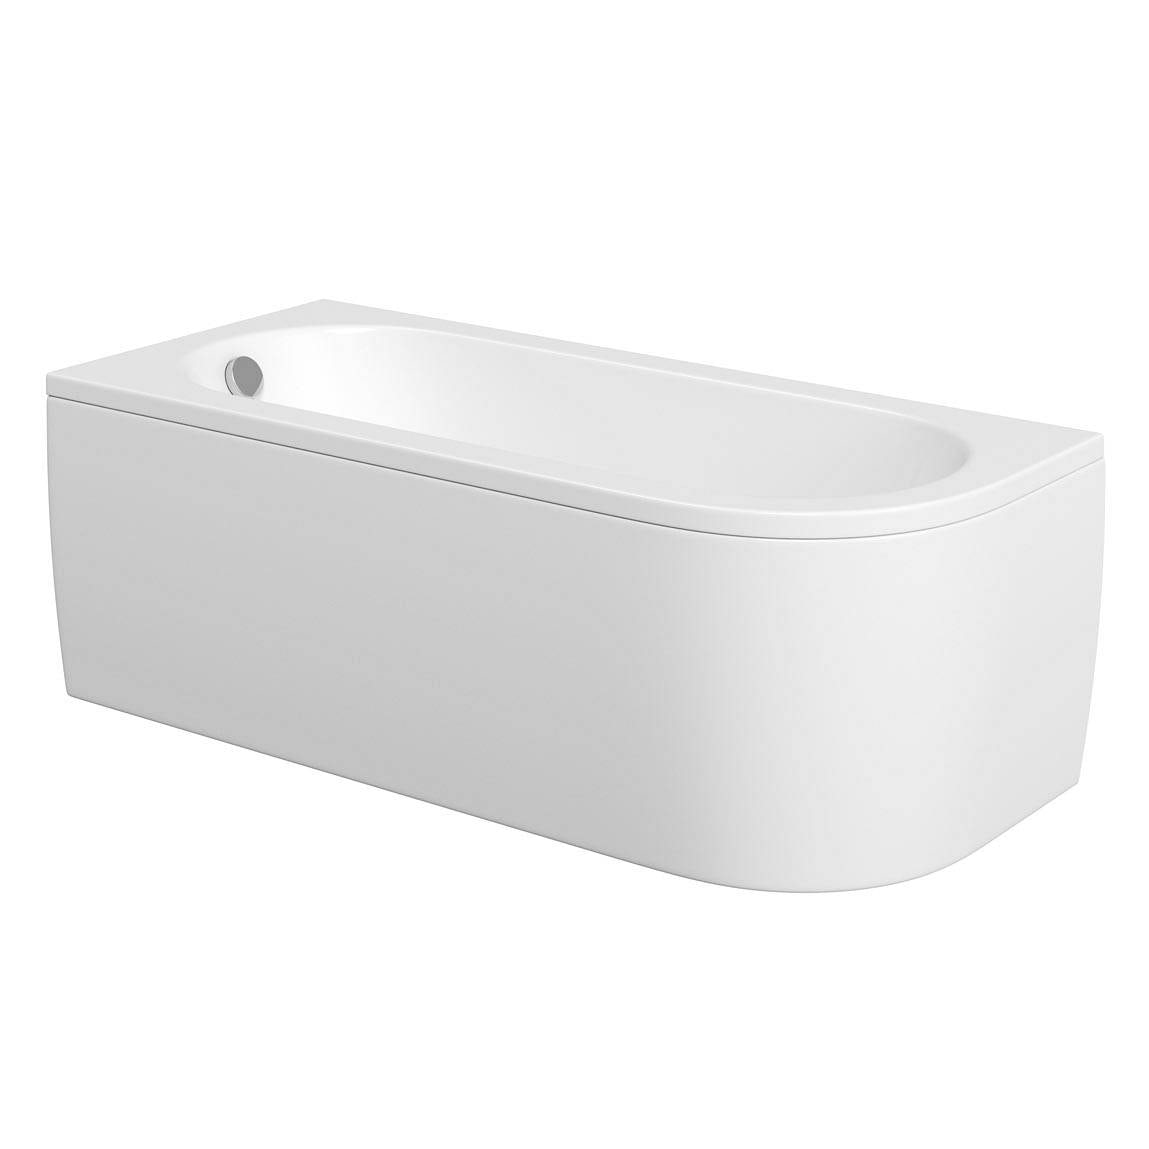 Orchard Elsdon D shaped left handed single ended bath with panel